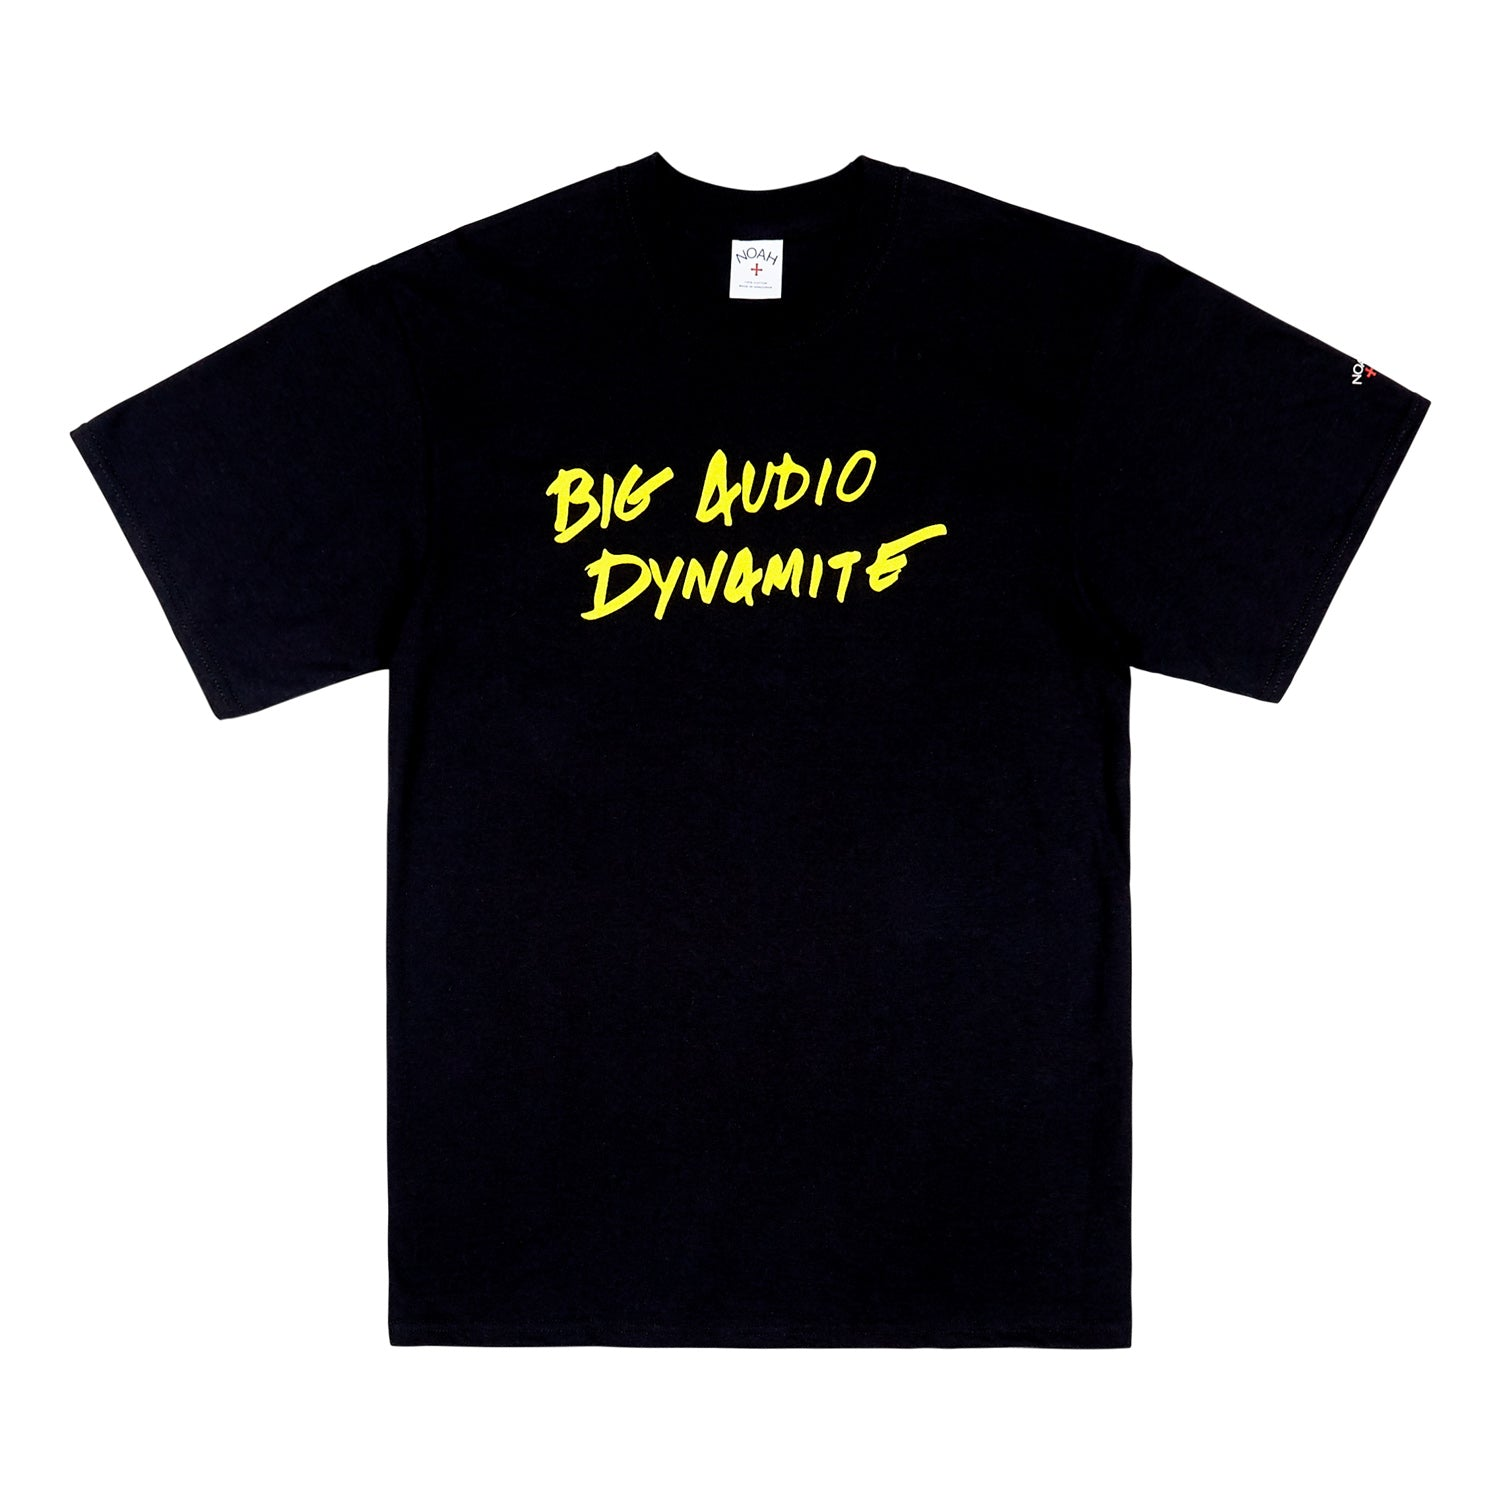 This is B.A.D Tee